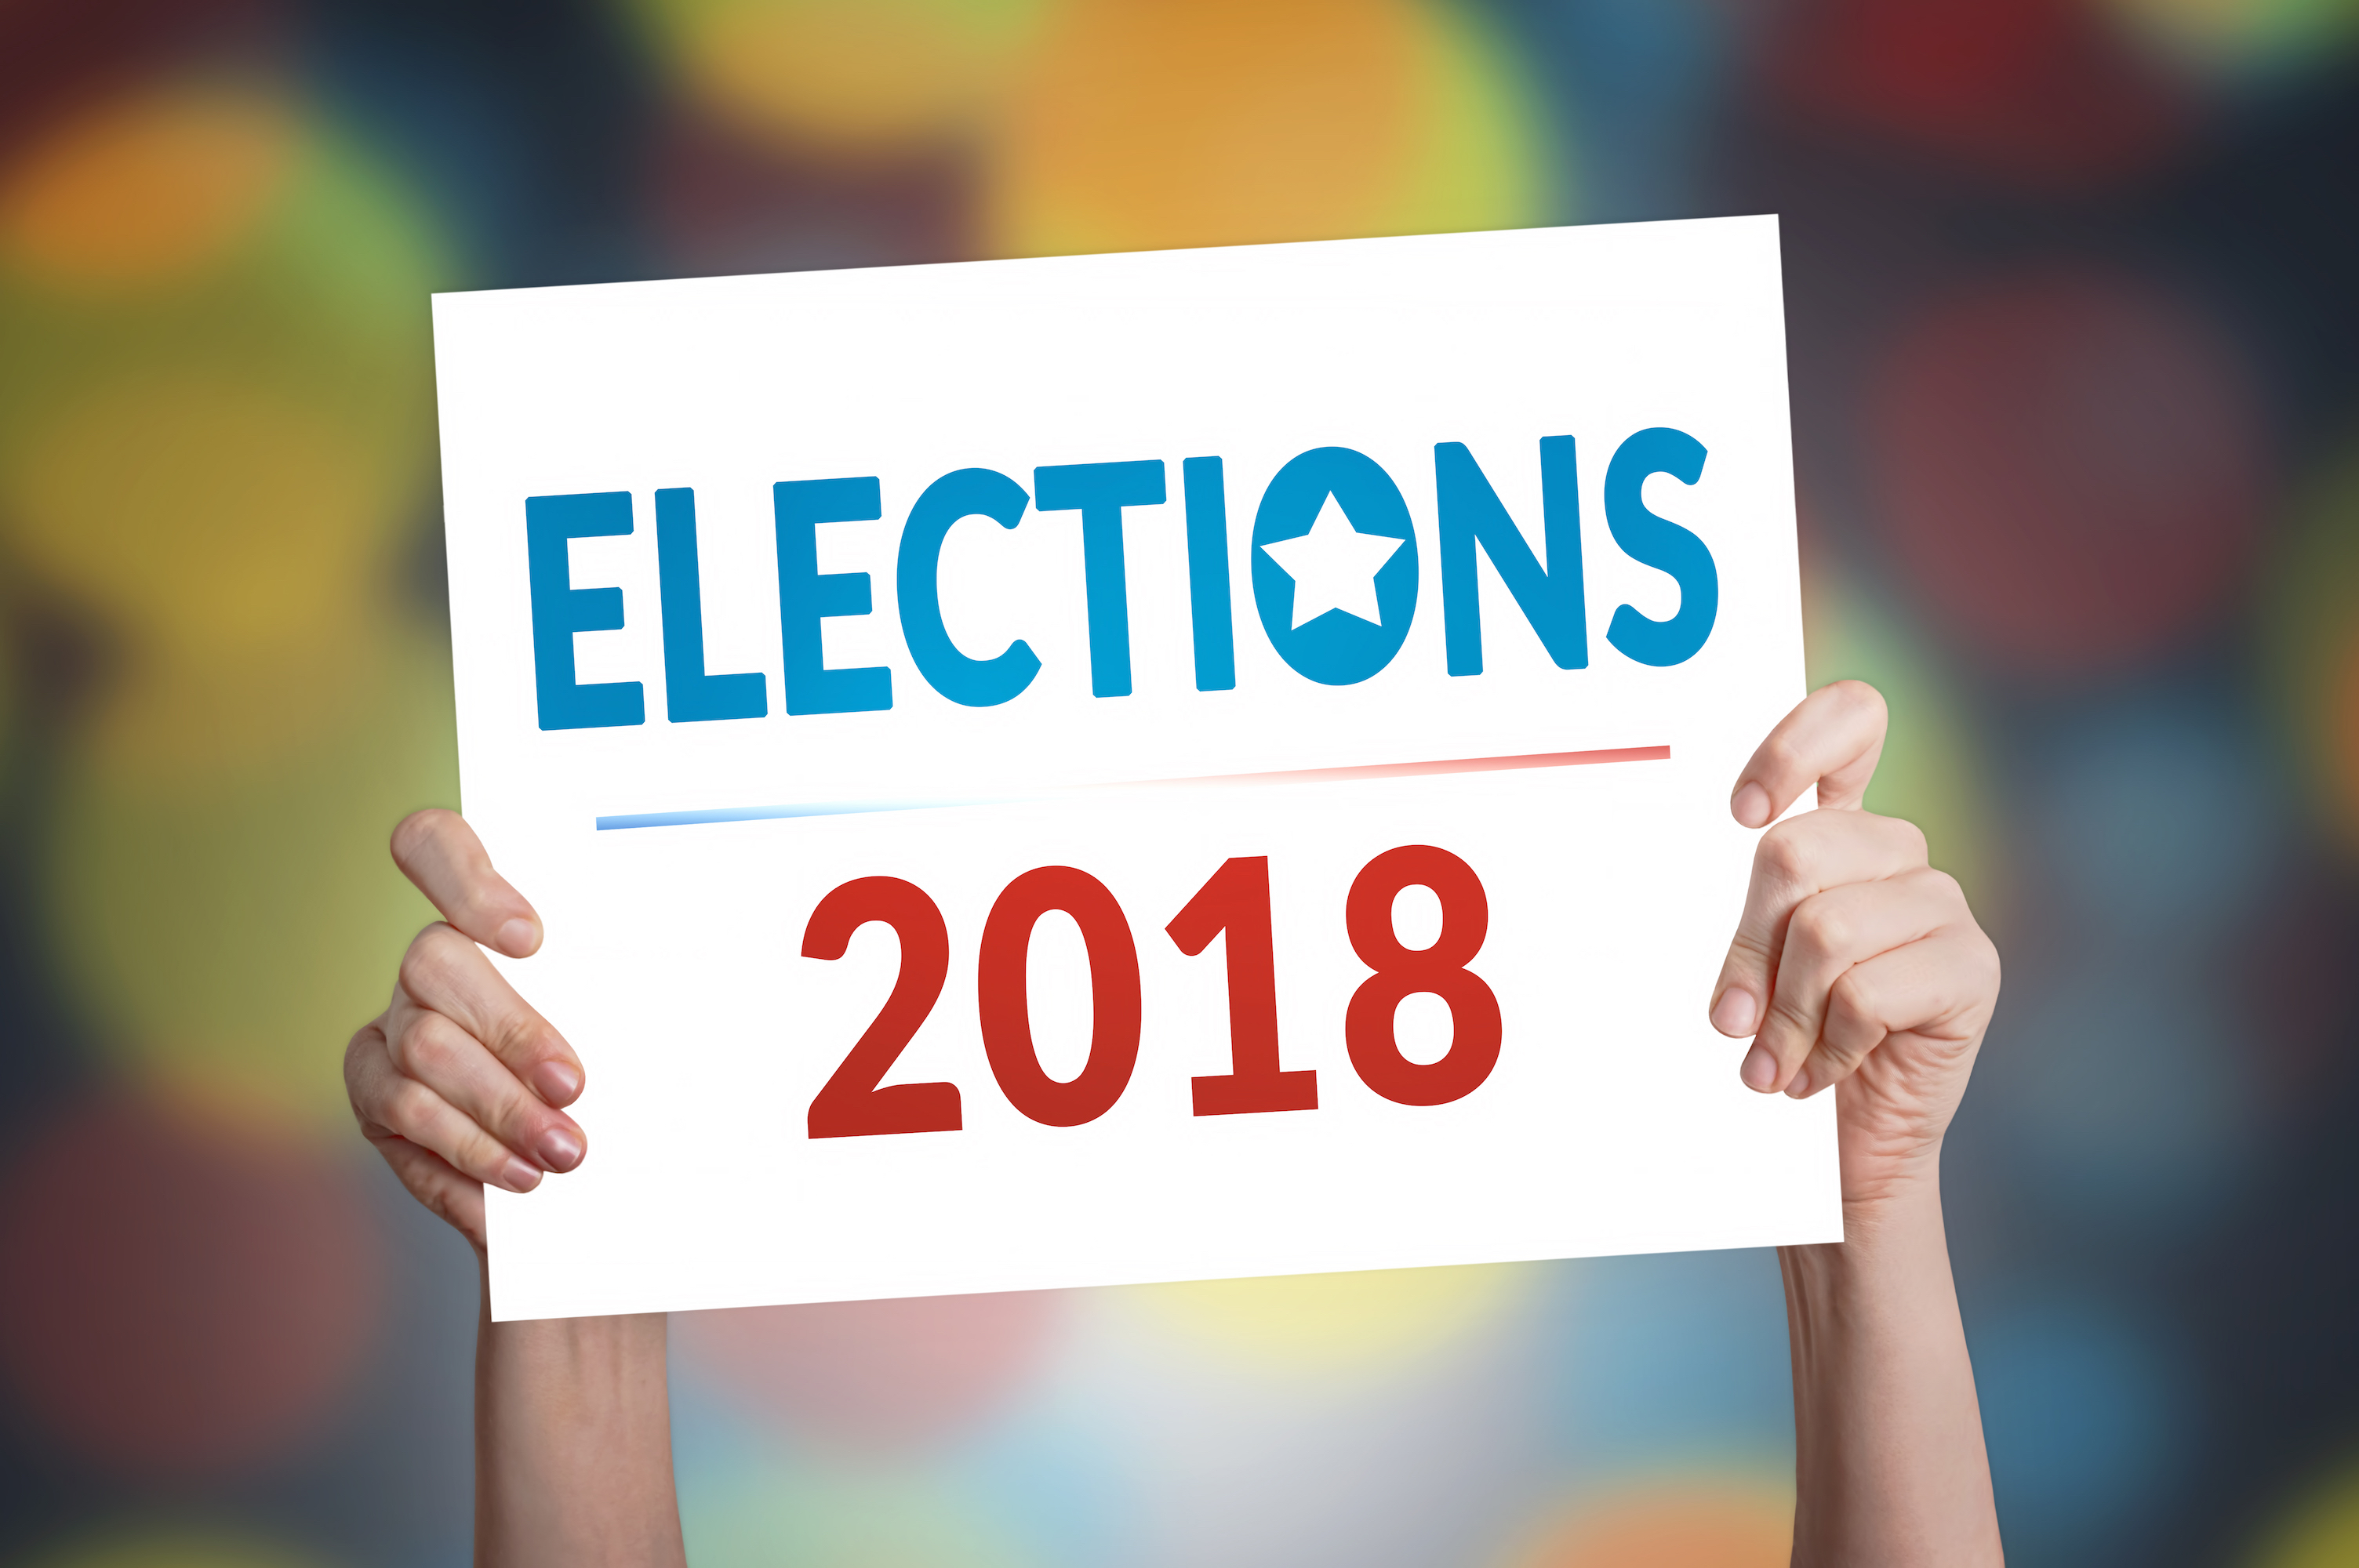 Elections 2018 Card